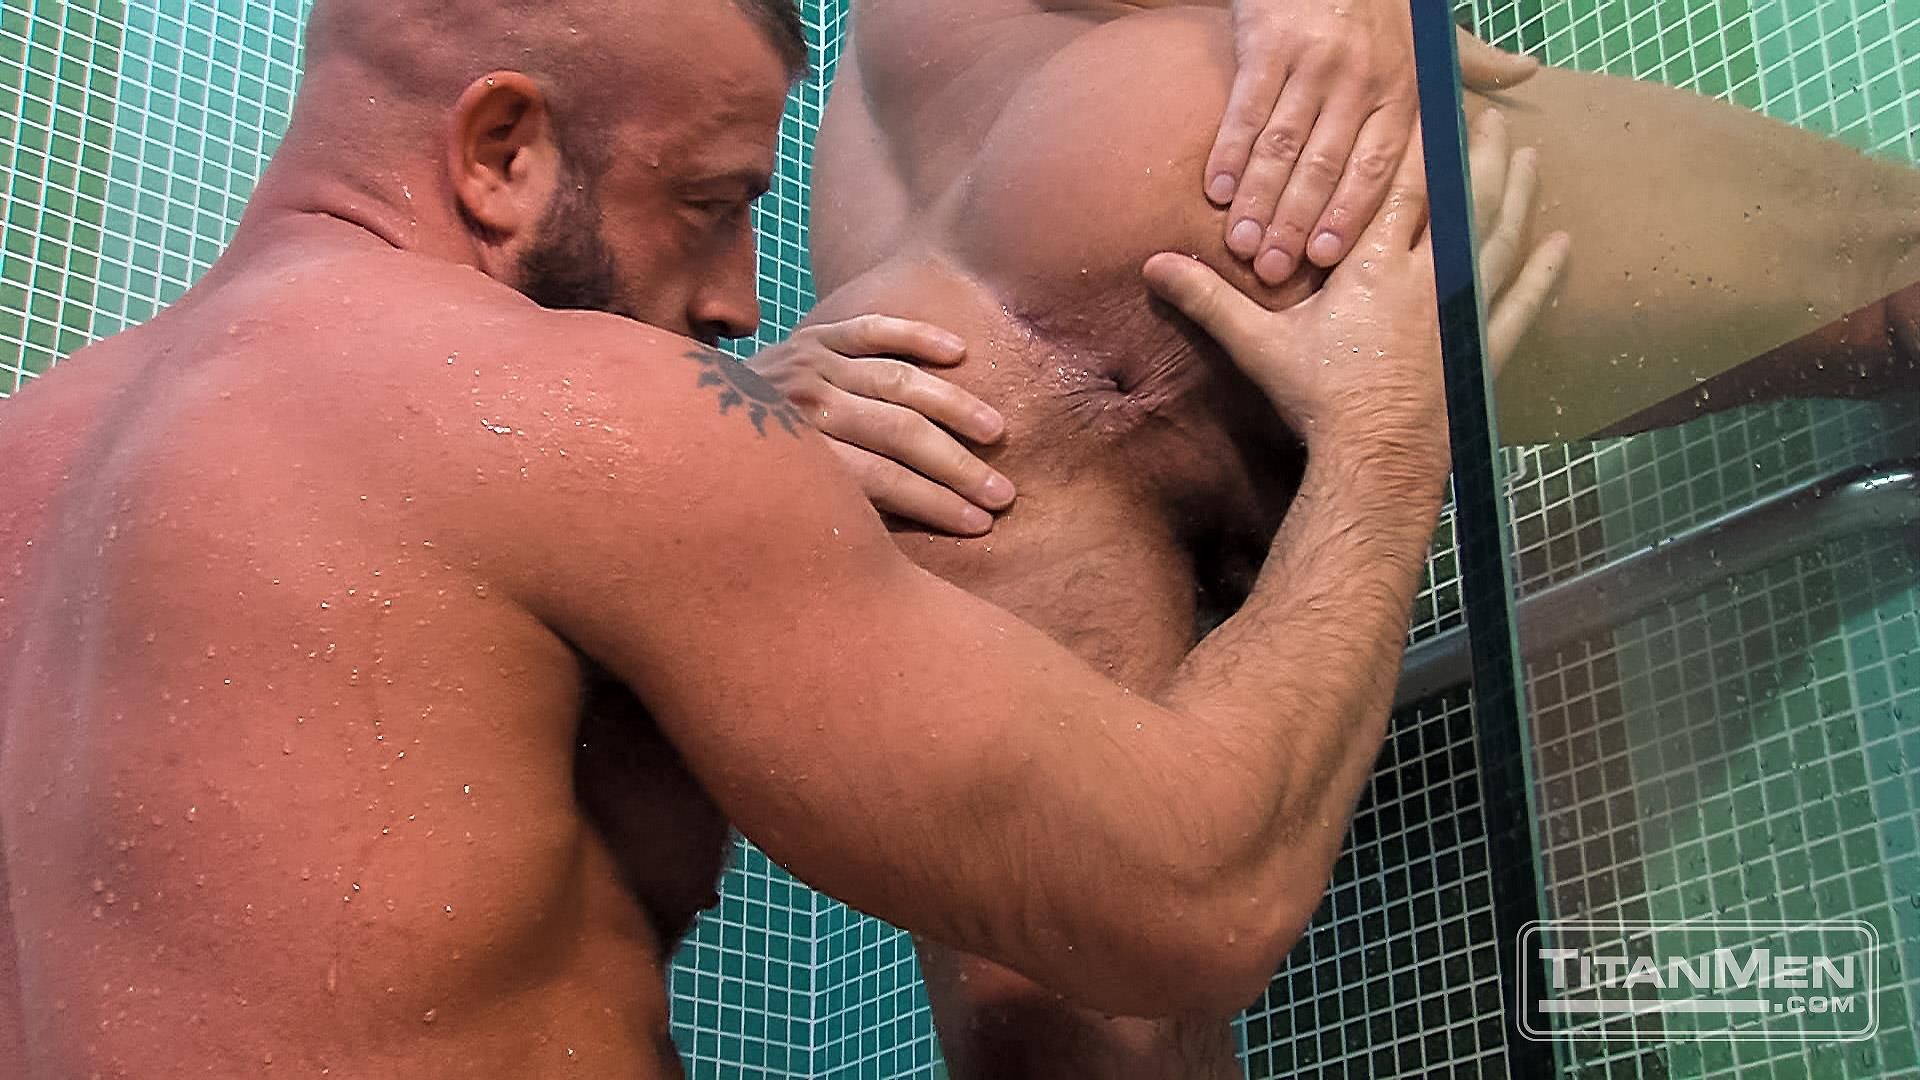 Titanmen Titan Hunter Marx and Dirk Caber Hairy Muscle Daddy Fuck Amateur Gay Porn 24 Dirk Carber Gets Fucked Hard By Another Muscle Daddy With A Thick Cock